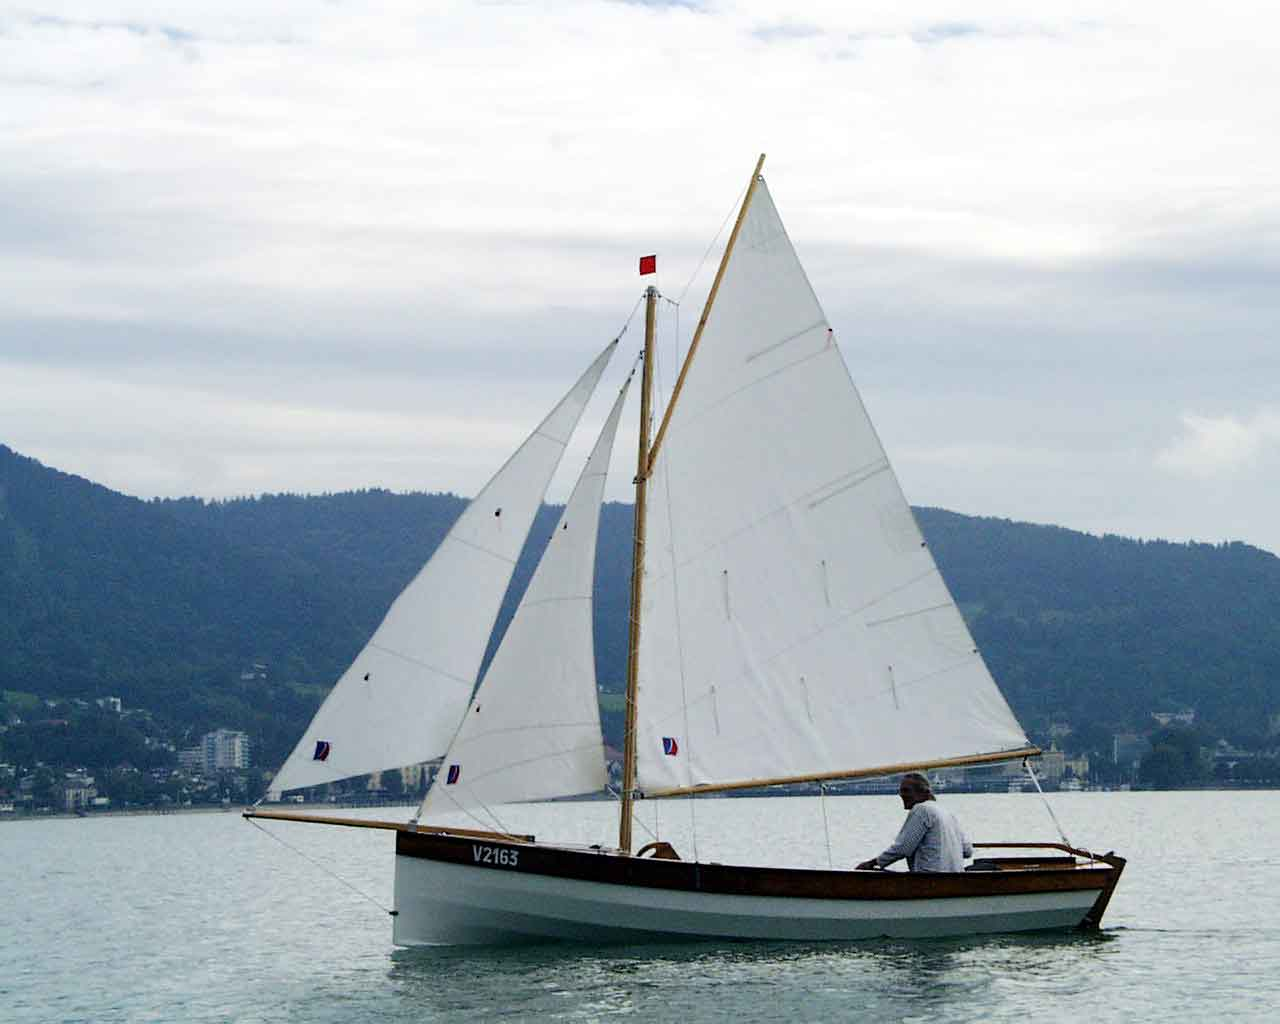 Campion Sail: Tom Dunderdale's 'Apple', et al. – Small Craft Advisor Blog